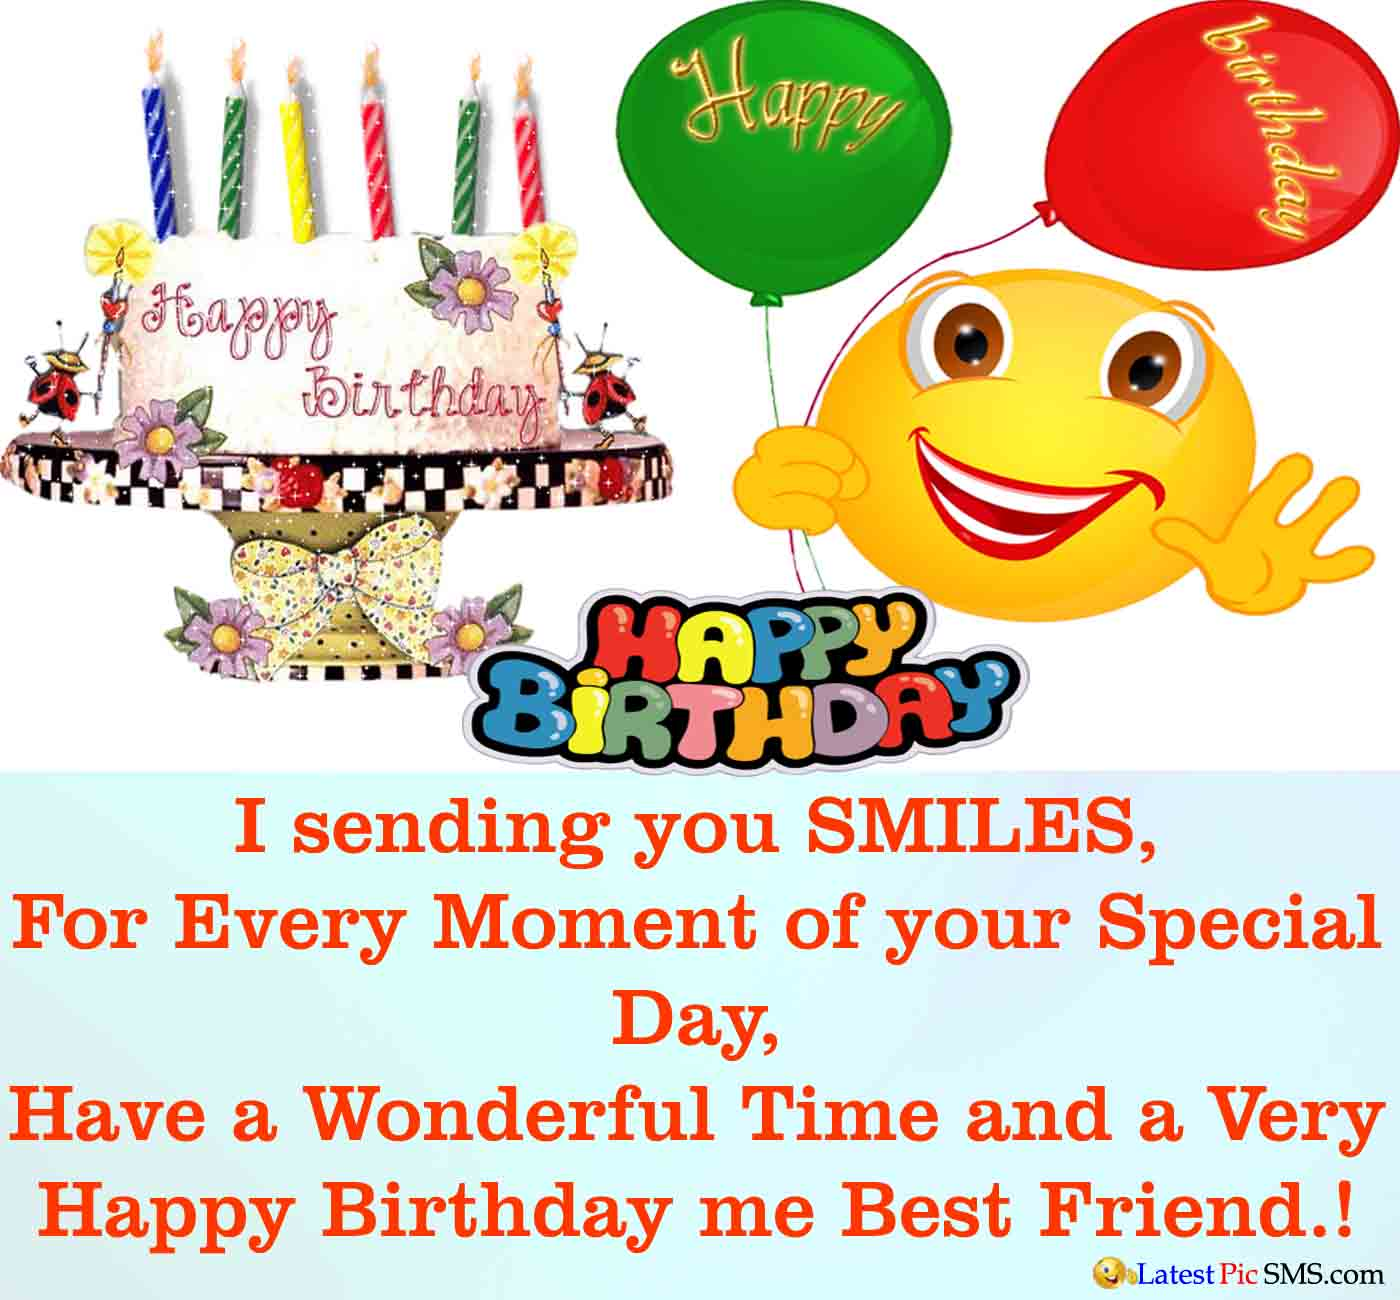 Funny Birthday Wishes For Best Friend Images ~ Funny happy birthday wishes for best friend with images